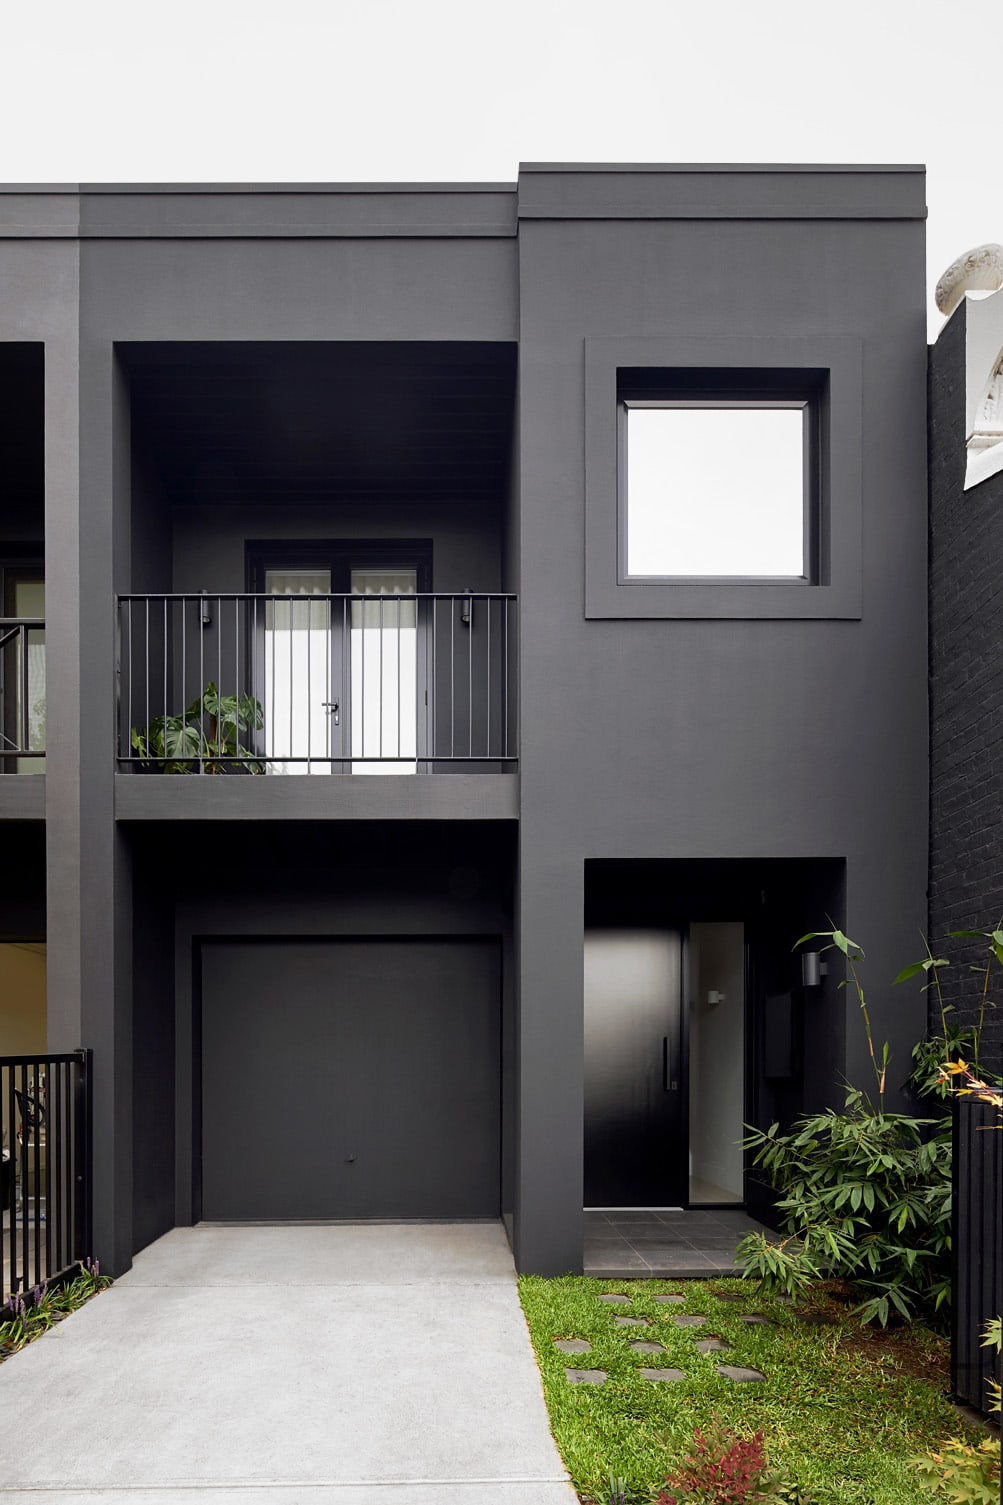 South Yarra townhouse reset, re - minimalissimo | ello